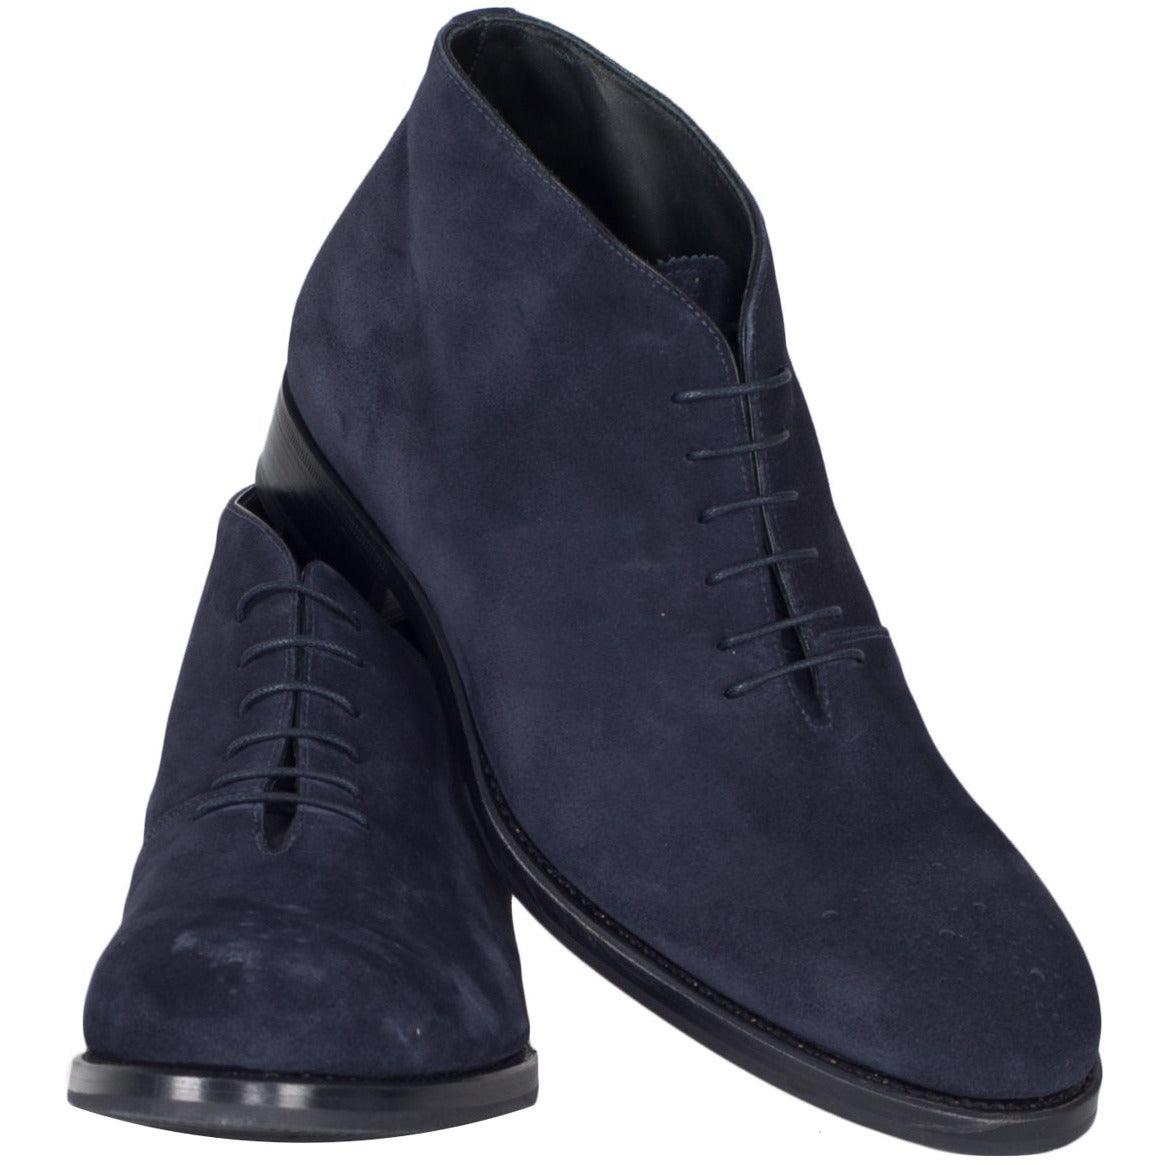 Jennifer Tattanelli crafted in Florence this velvety men shoes, made entirely by hand in Italy, they are lined interior in leather of the highest quality, with laces and rubber sole